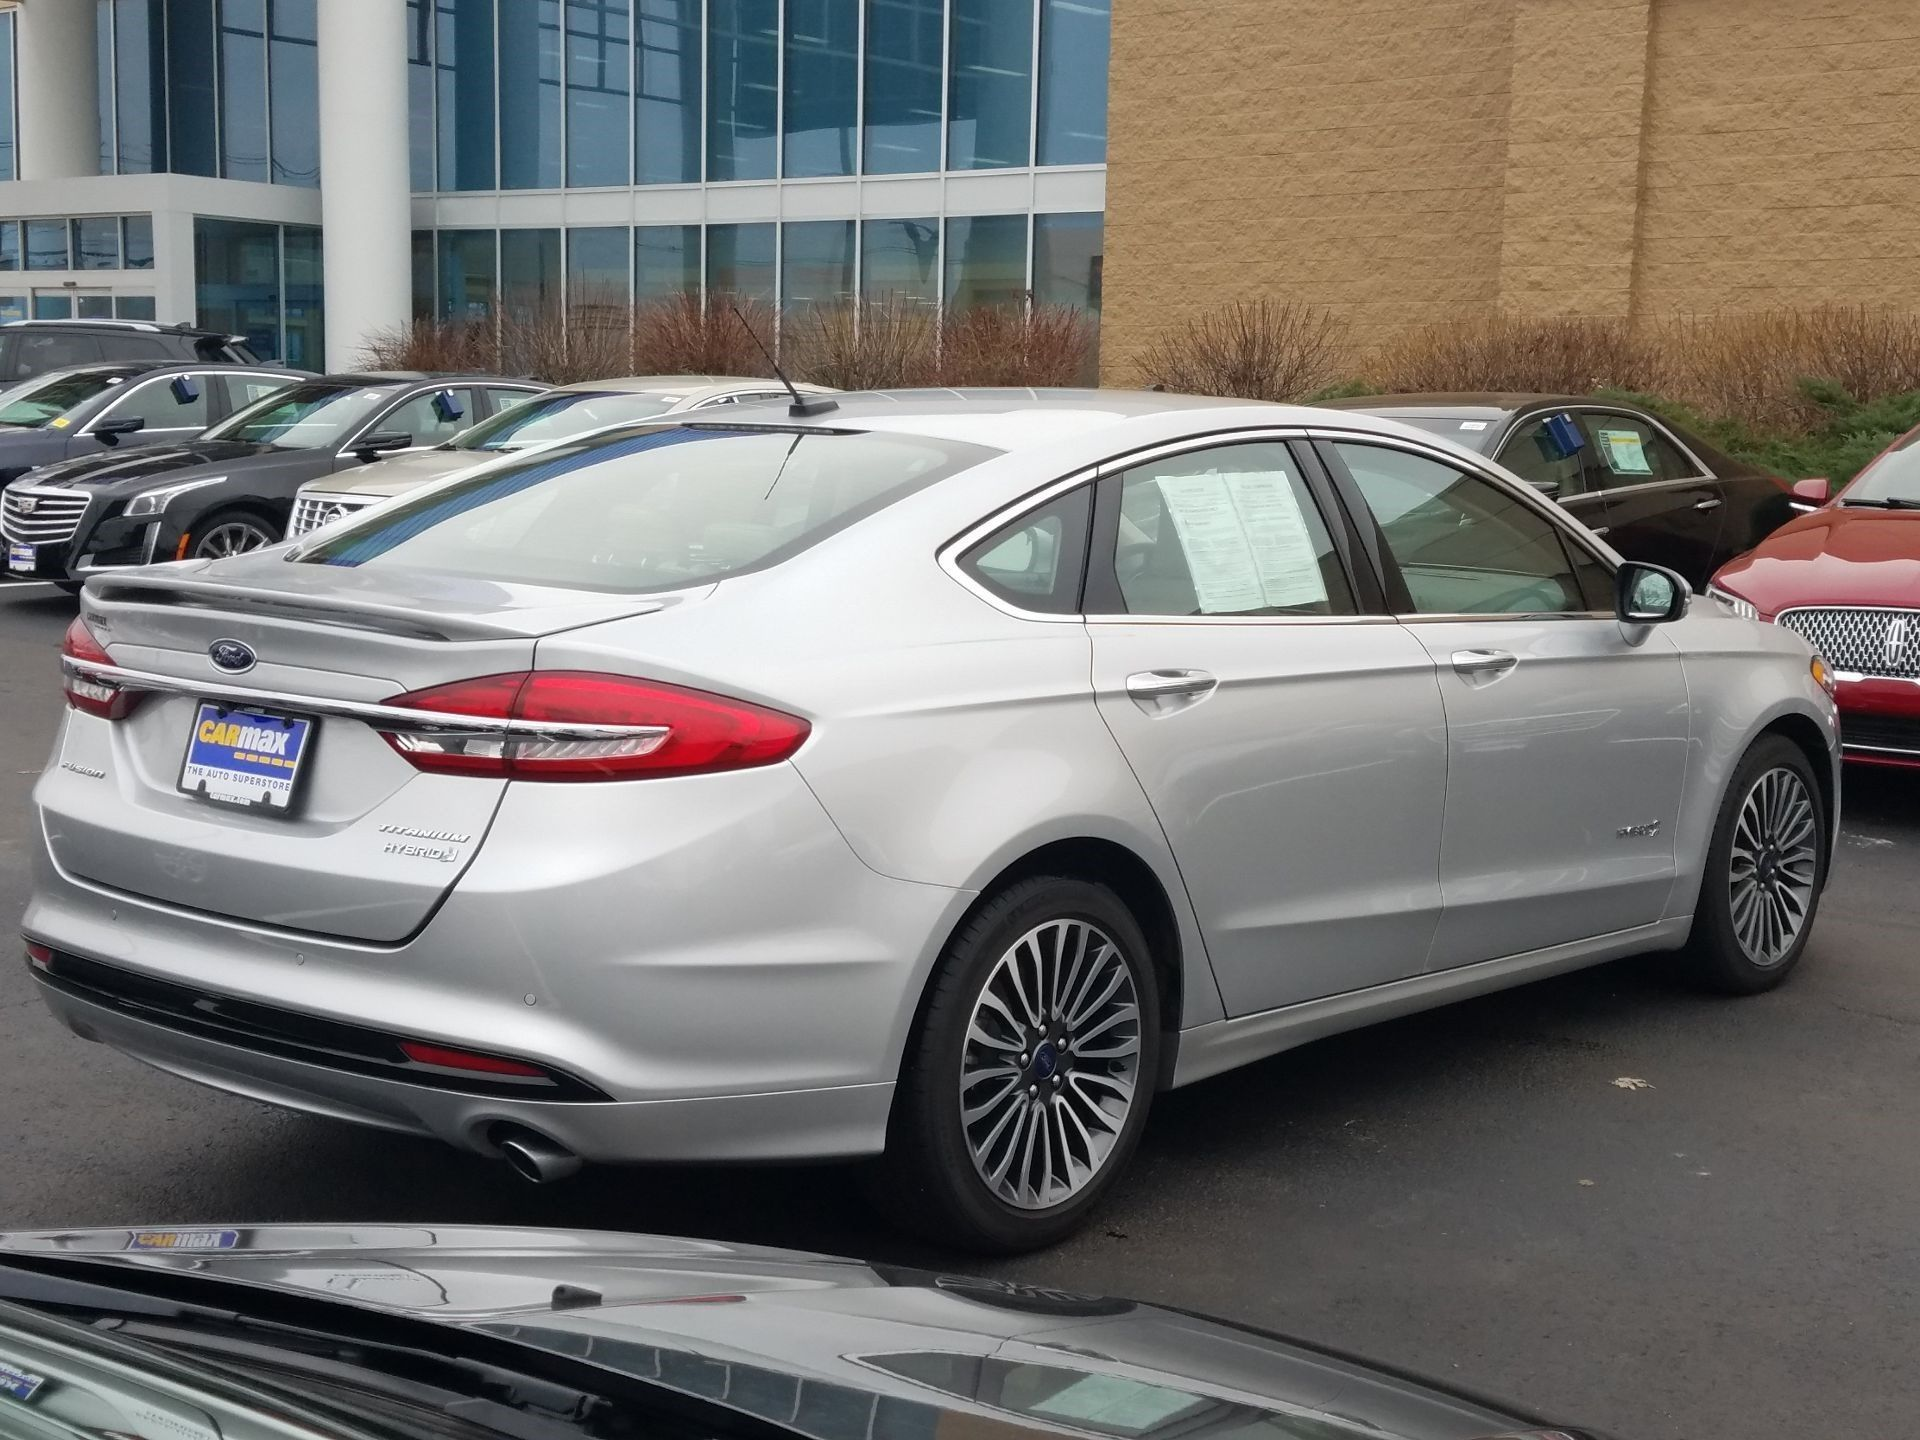 2018 Ford Fusion Titanium Hybrid In 2020 Ford Fusion Ford Gas And Electric